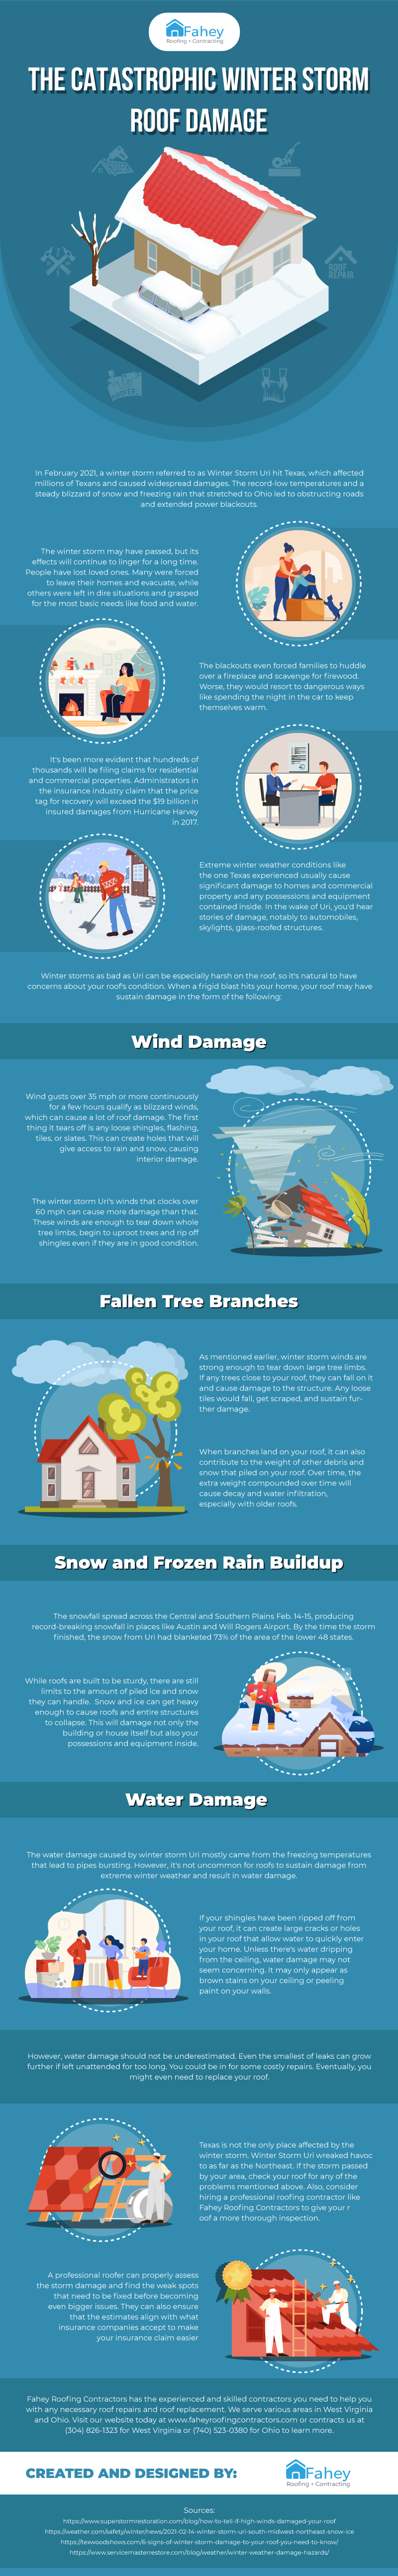 The-Catastrophic-Winter-Storm-Roof-Damages-in-Texas-Infographic